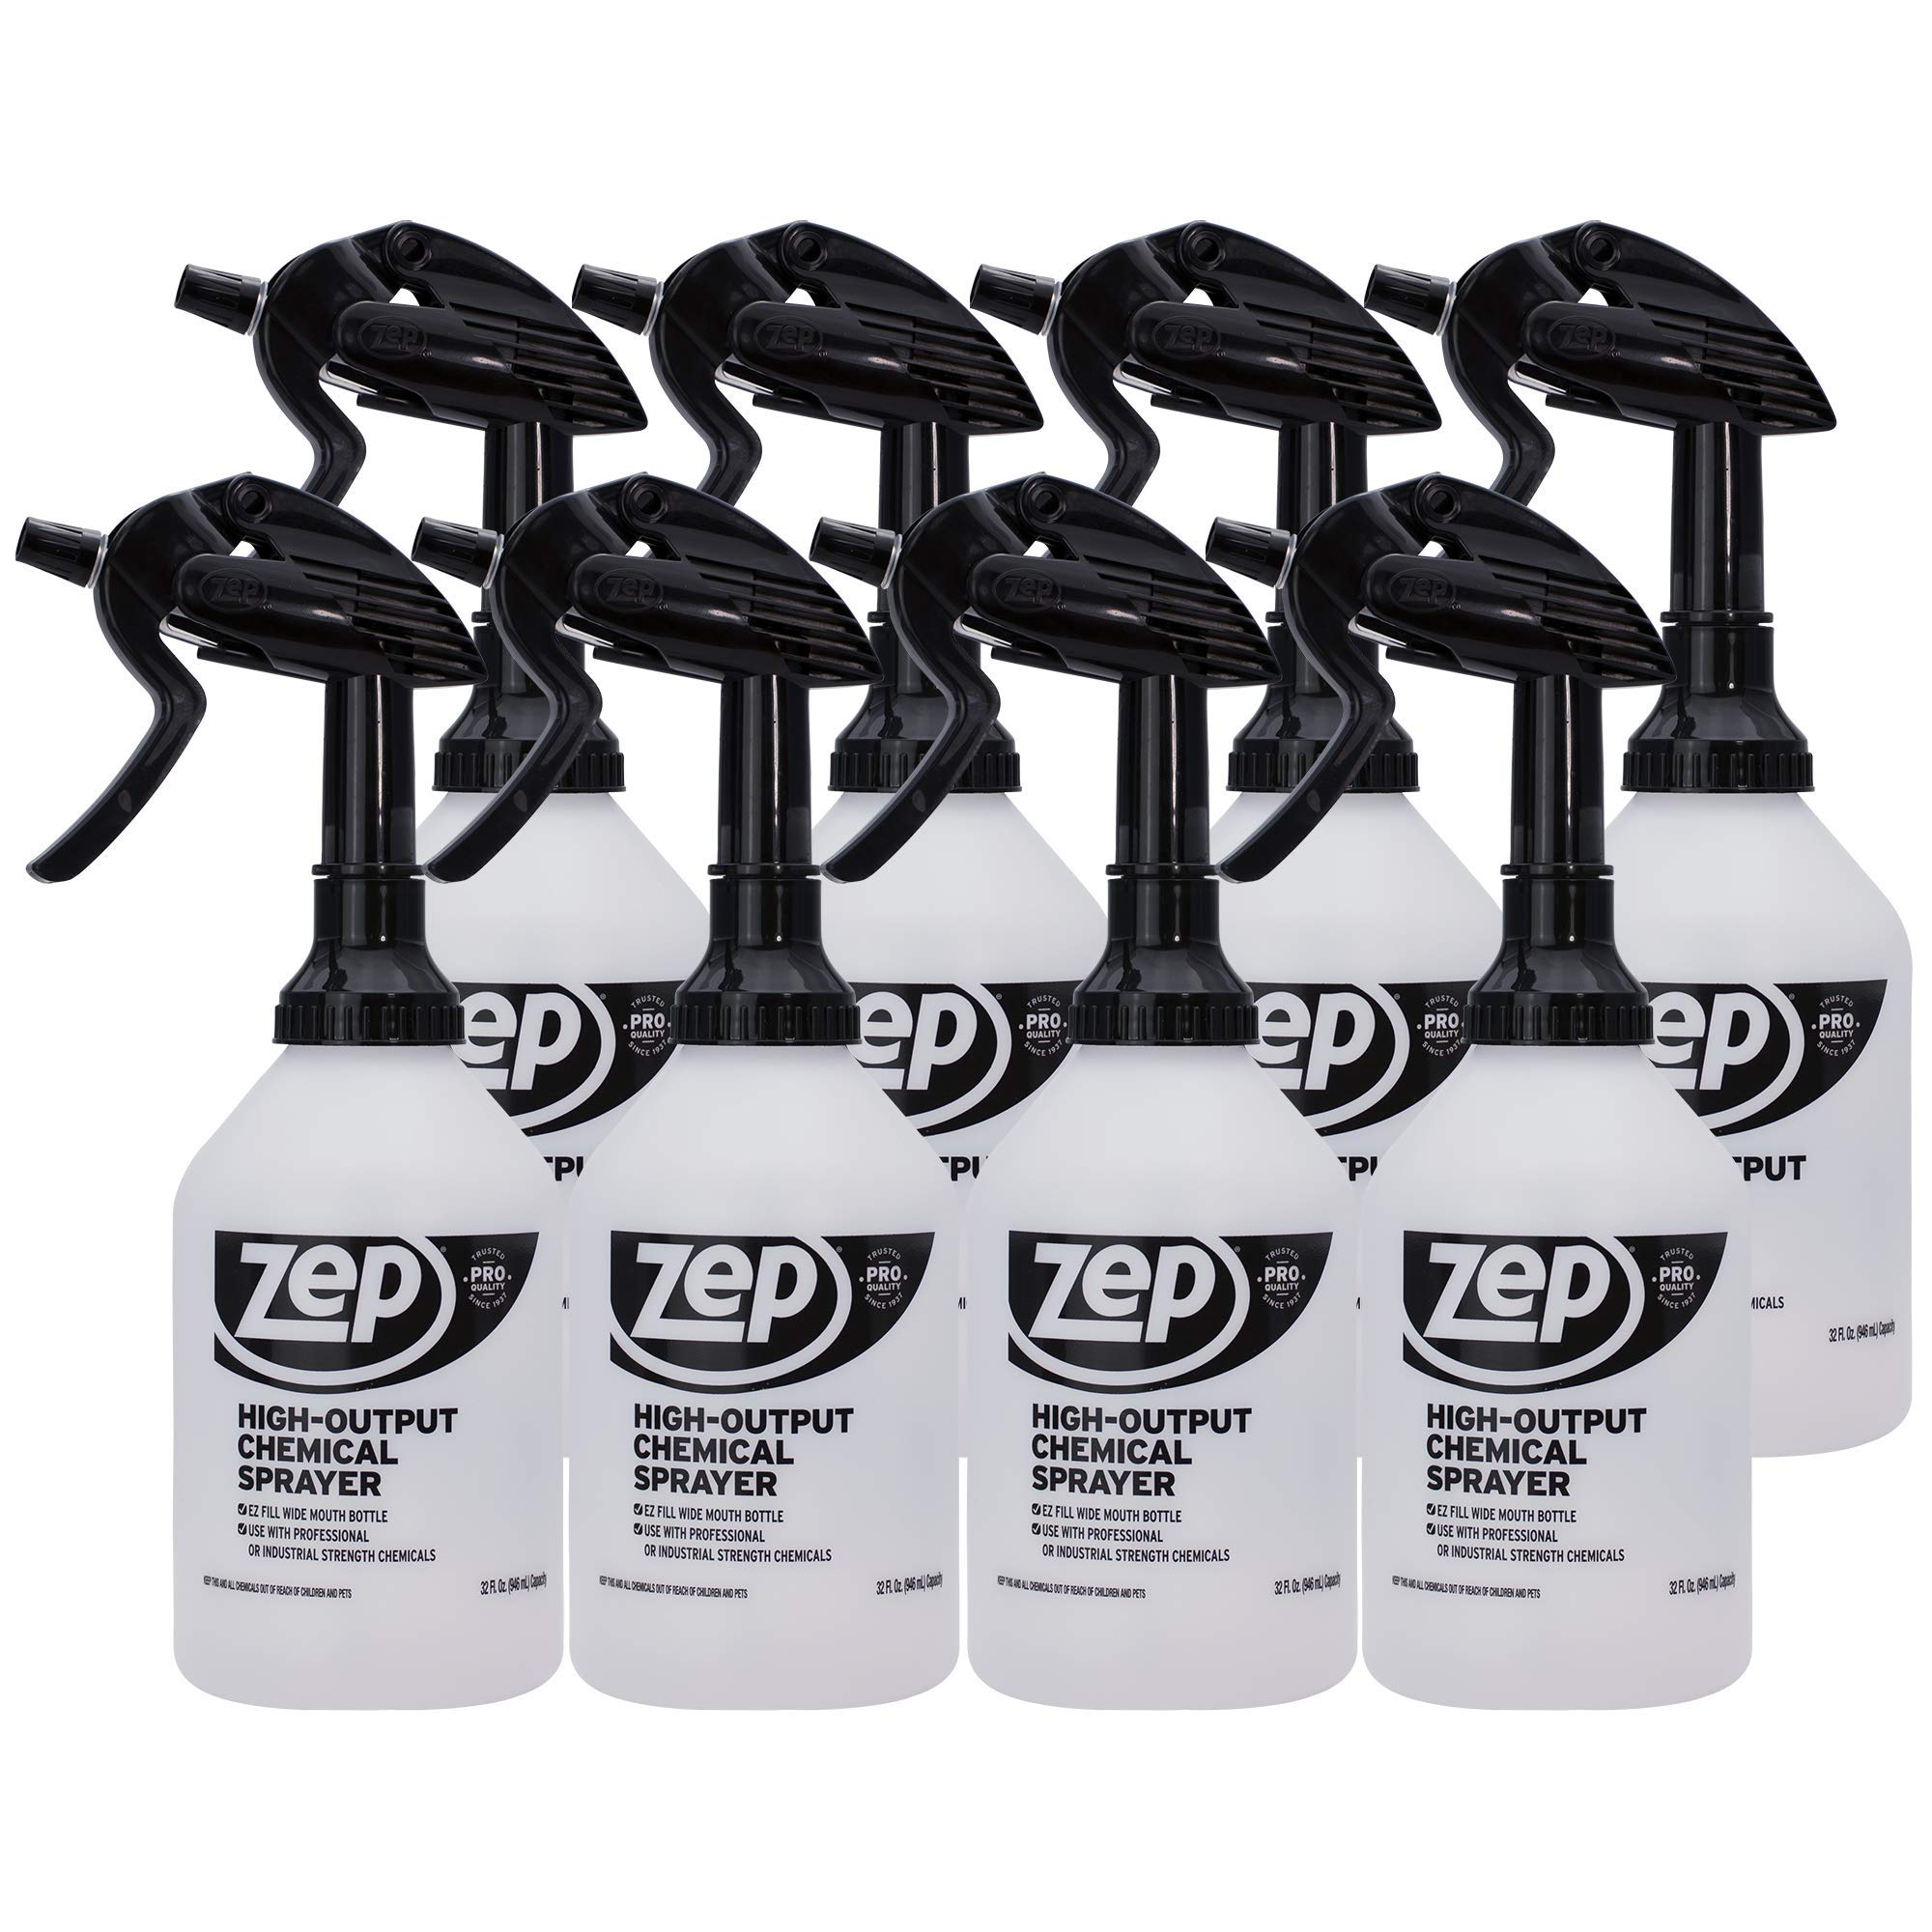 Zep High Output Chemical Pro Sprayer 32 Ounce (Case of 8) - Wide Mouth for Easy Pouring by Zep